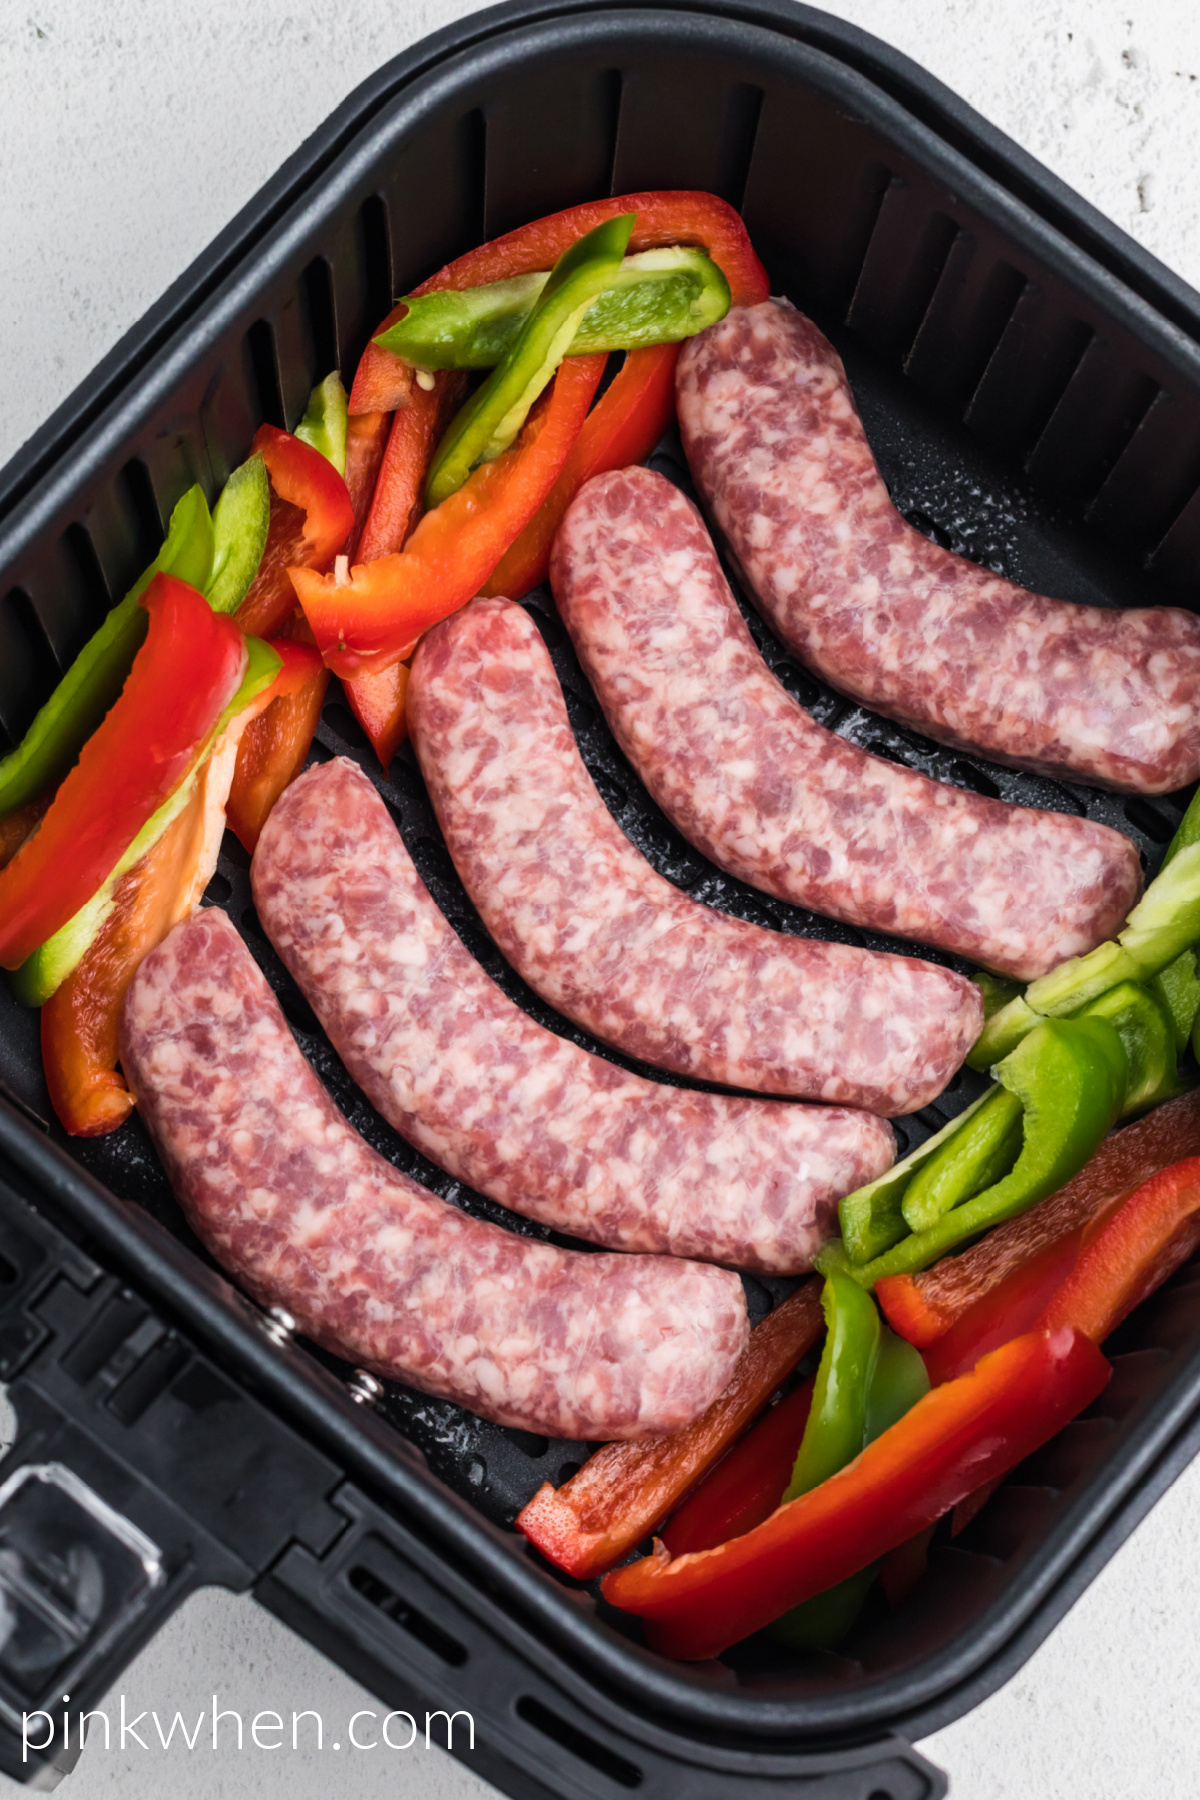 bell peppers and brats in the air fryer basket, ready to cook.